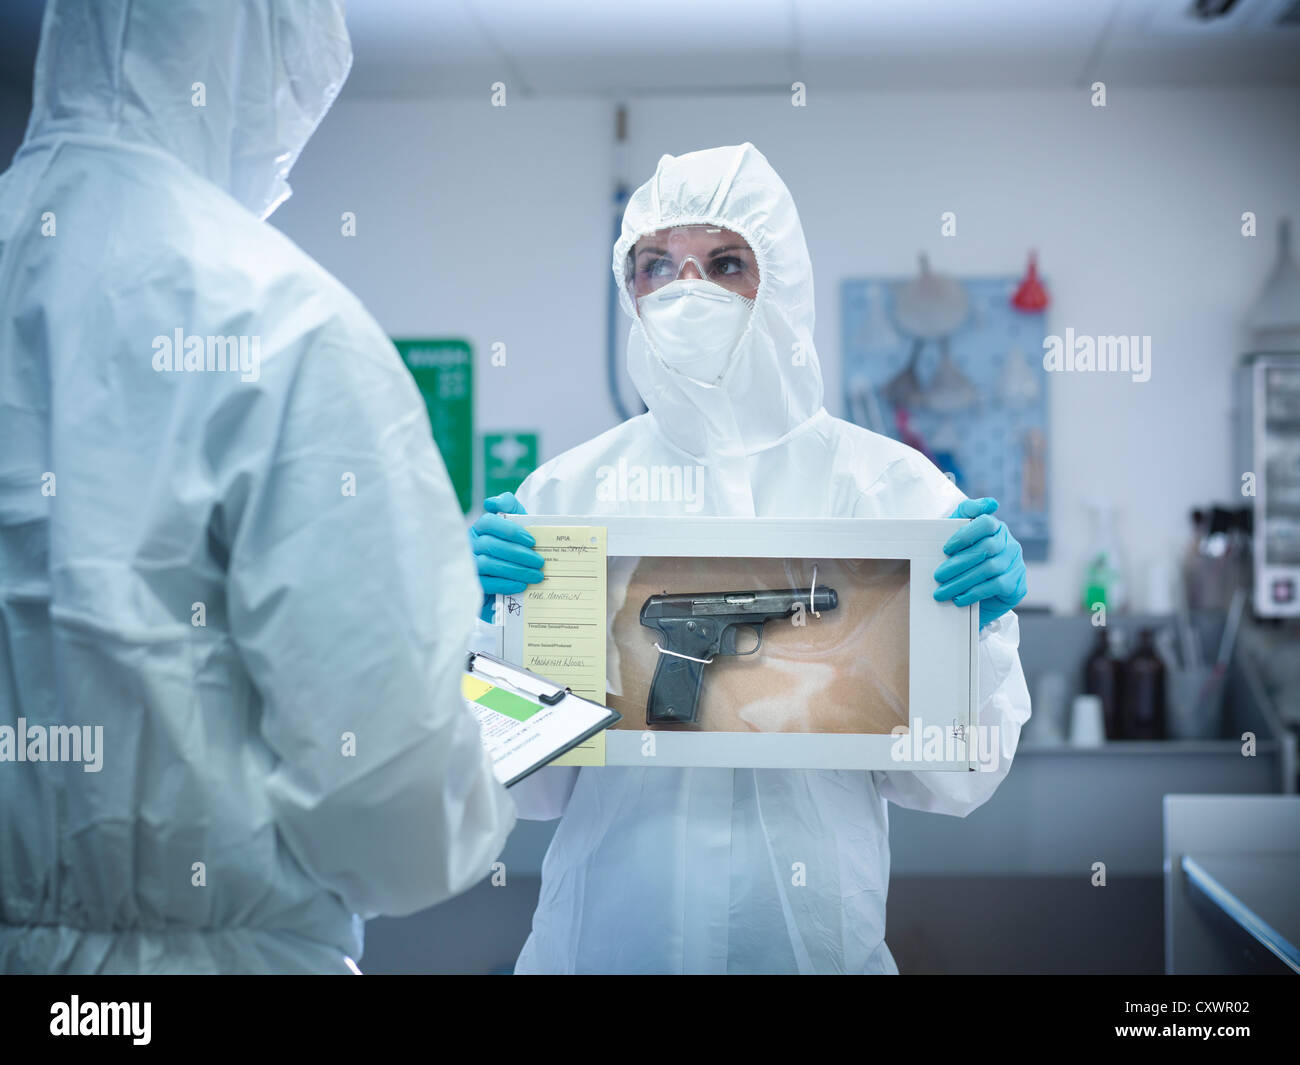 Forensic scientist with gun in box - Stock Image